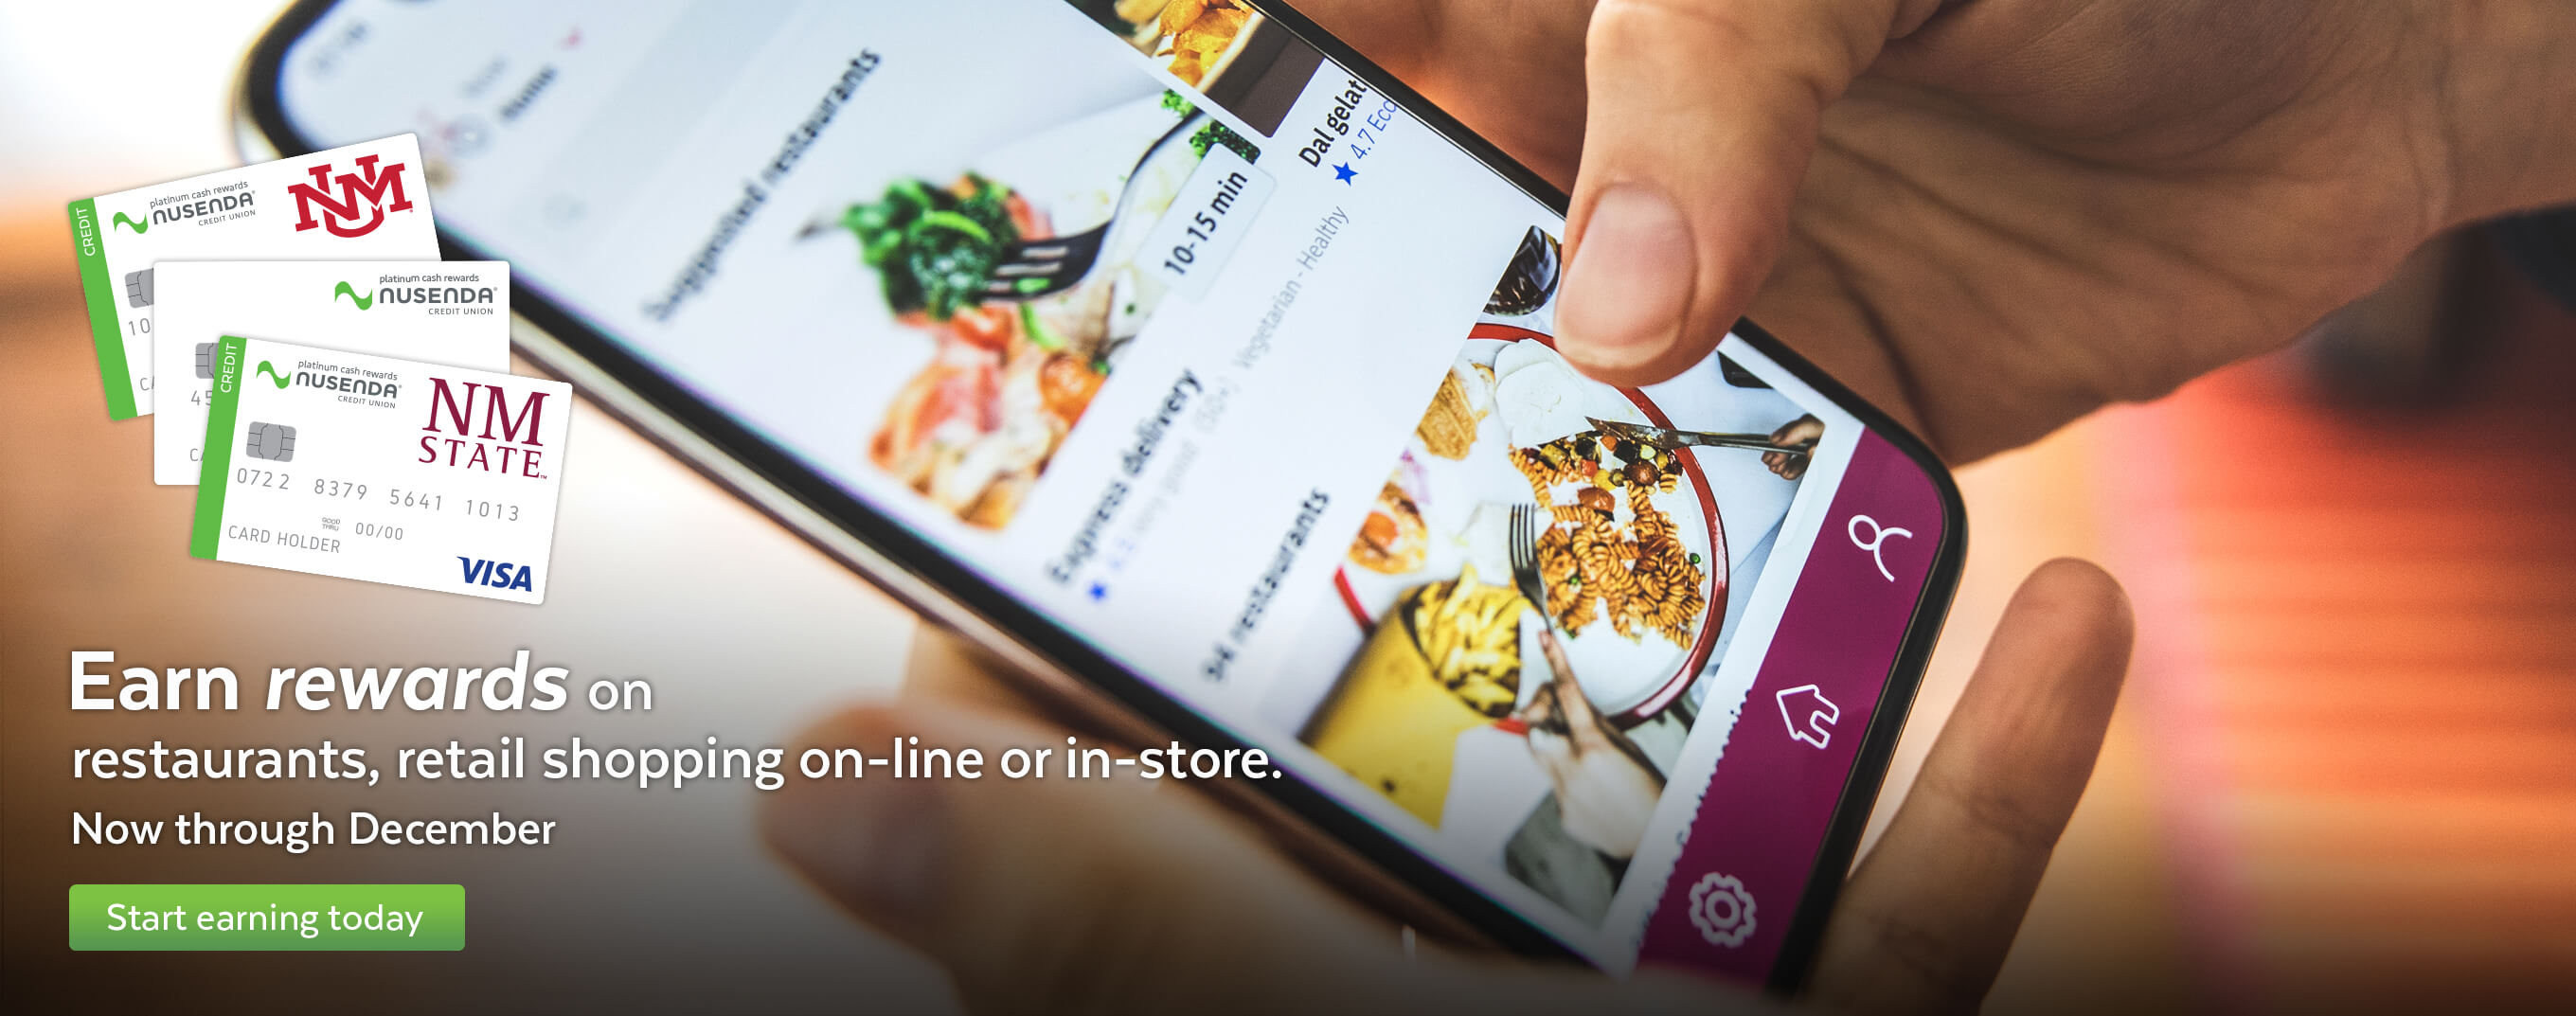 Earn rewards on restaurants and retail shopping online or in-store now through December.